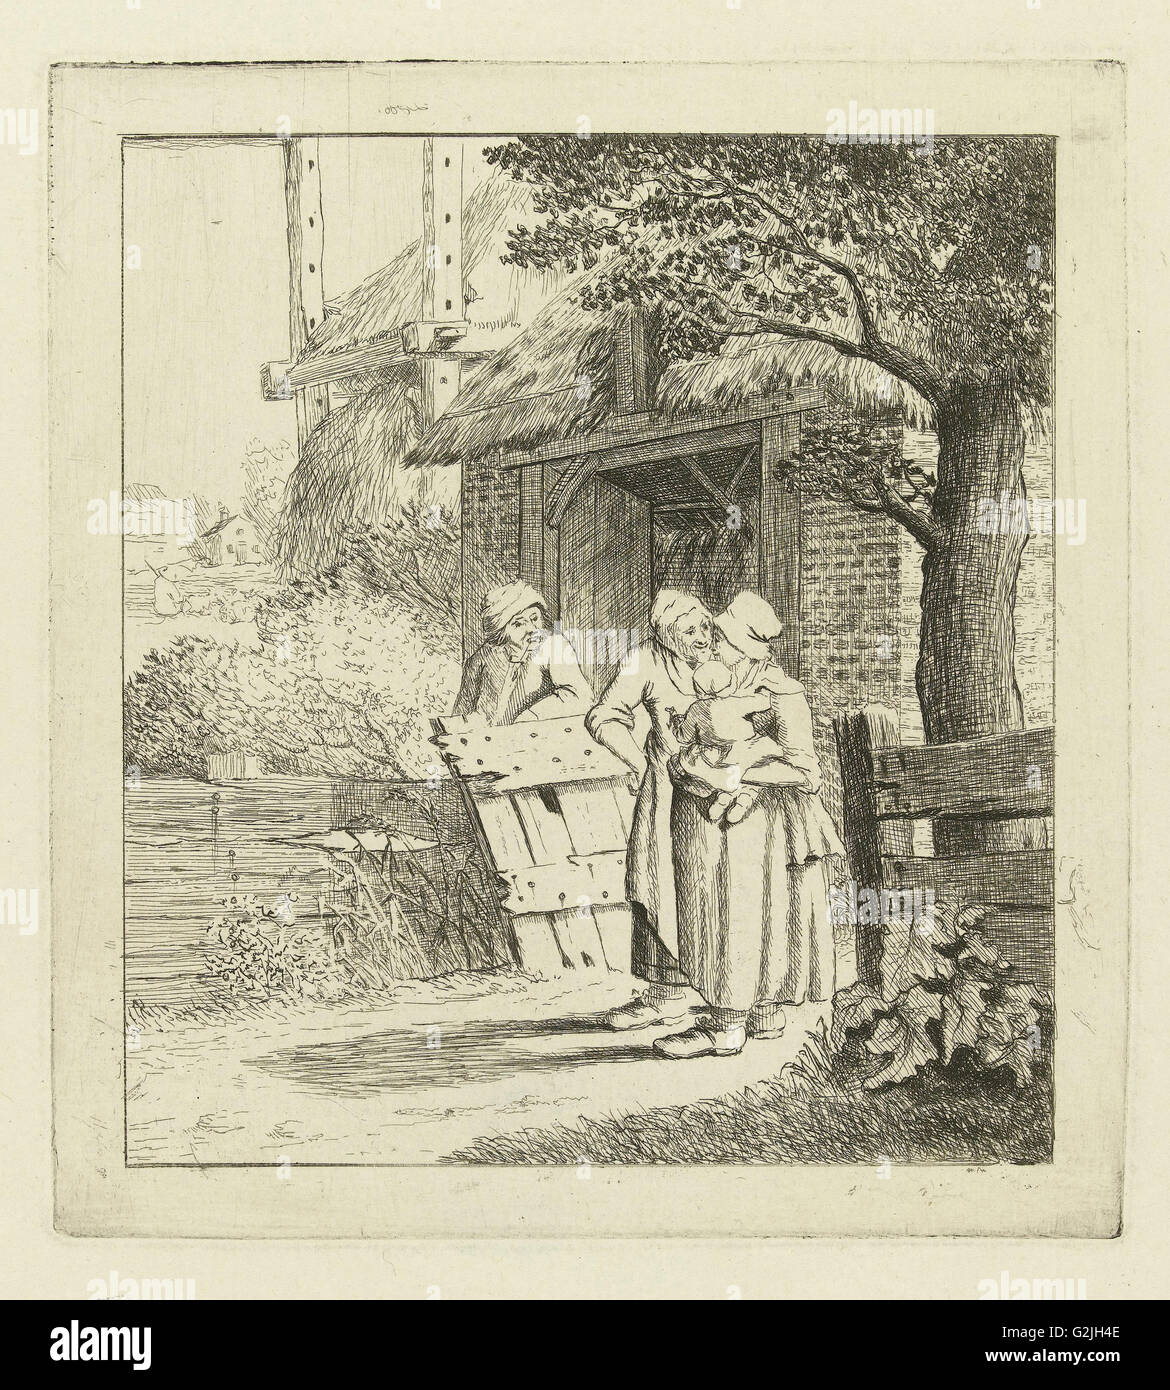 Two women and a man on a farm, Marie Lambertine Coclers, c. 1776 - c. 1815 - Stock Image